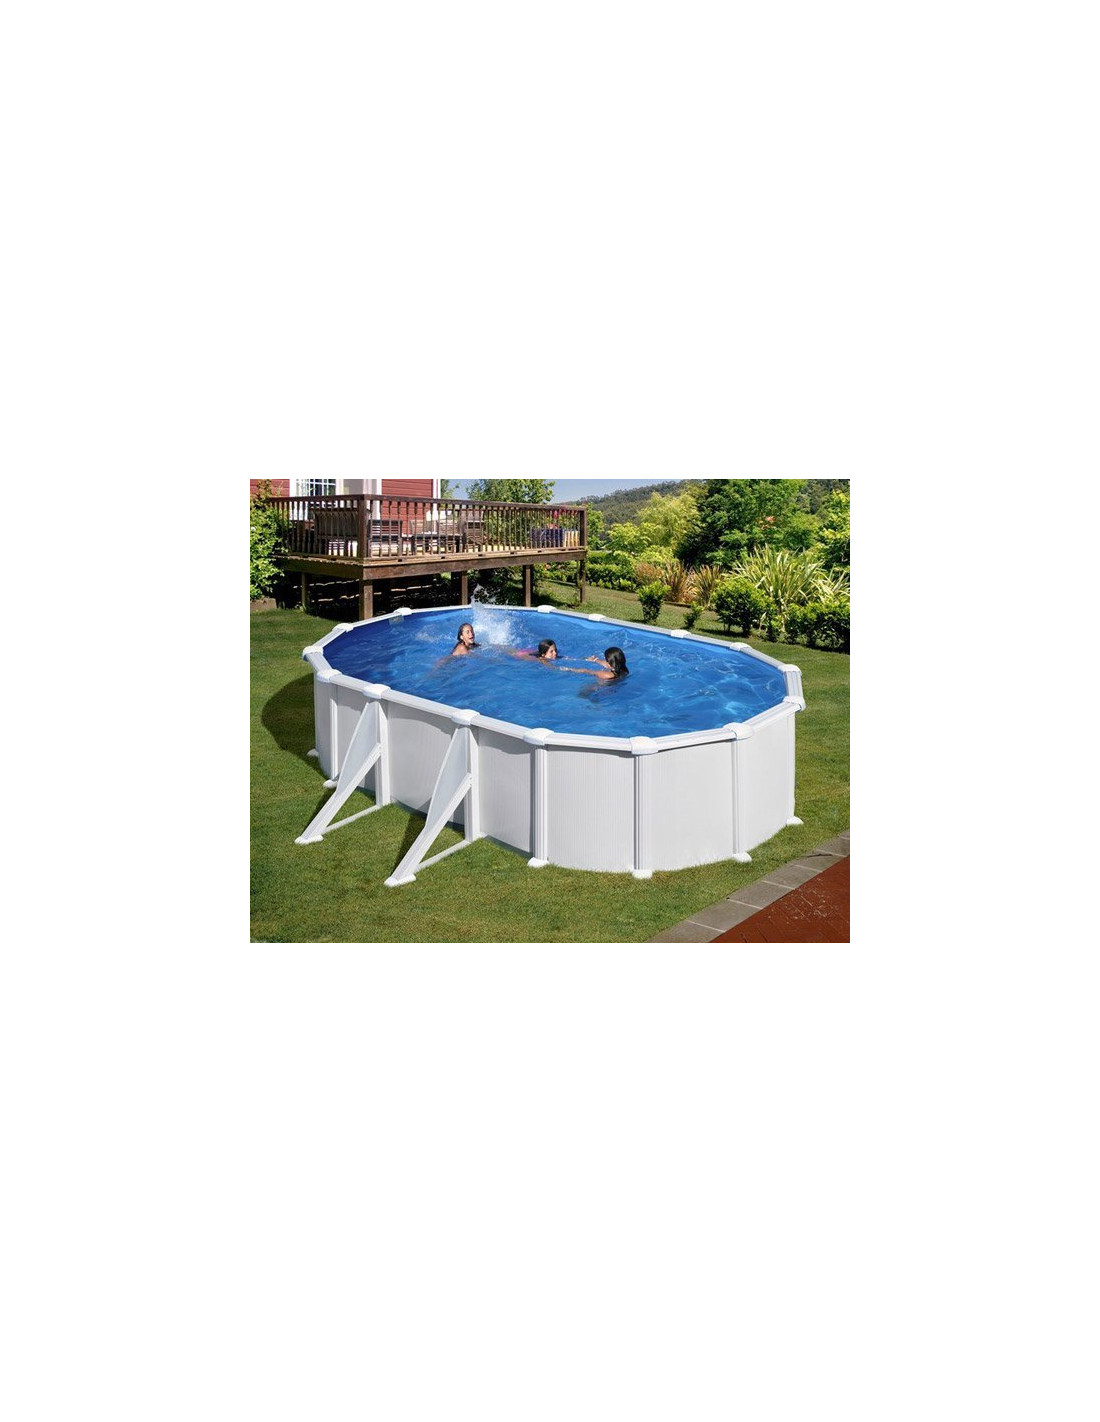 Piscine acier ovale atlantis avec renforts for Atlantis piscine